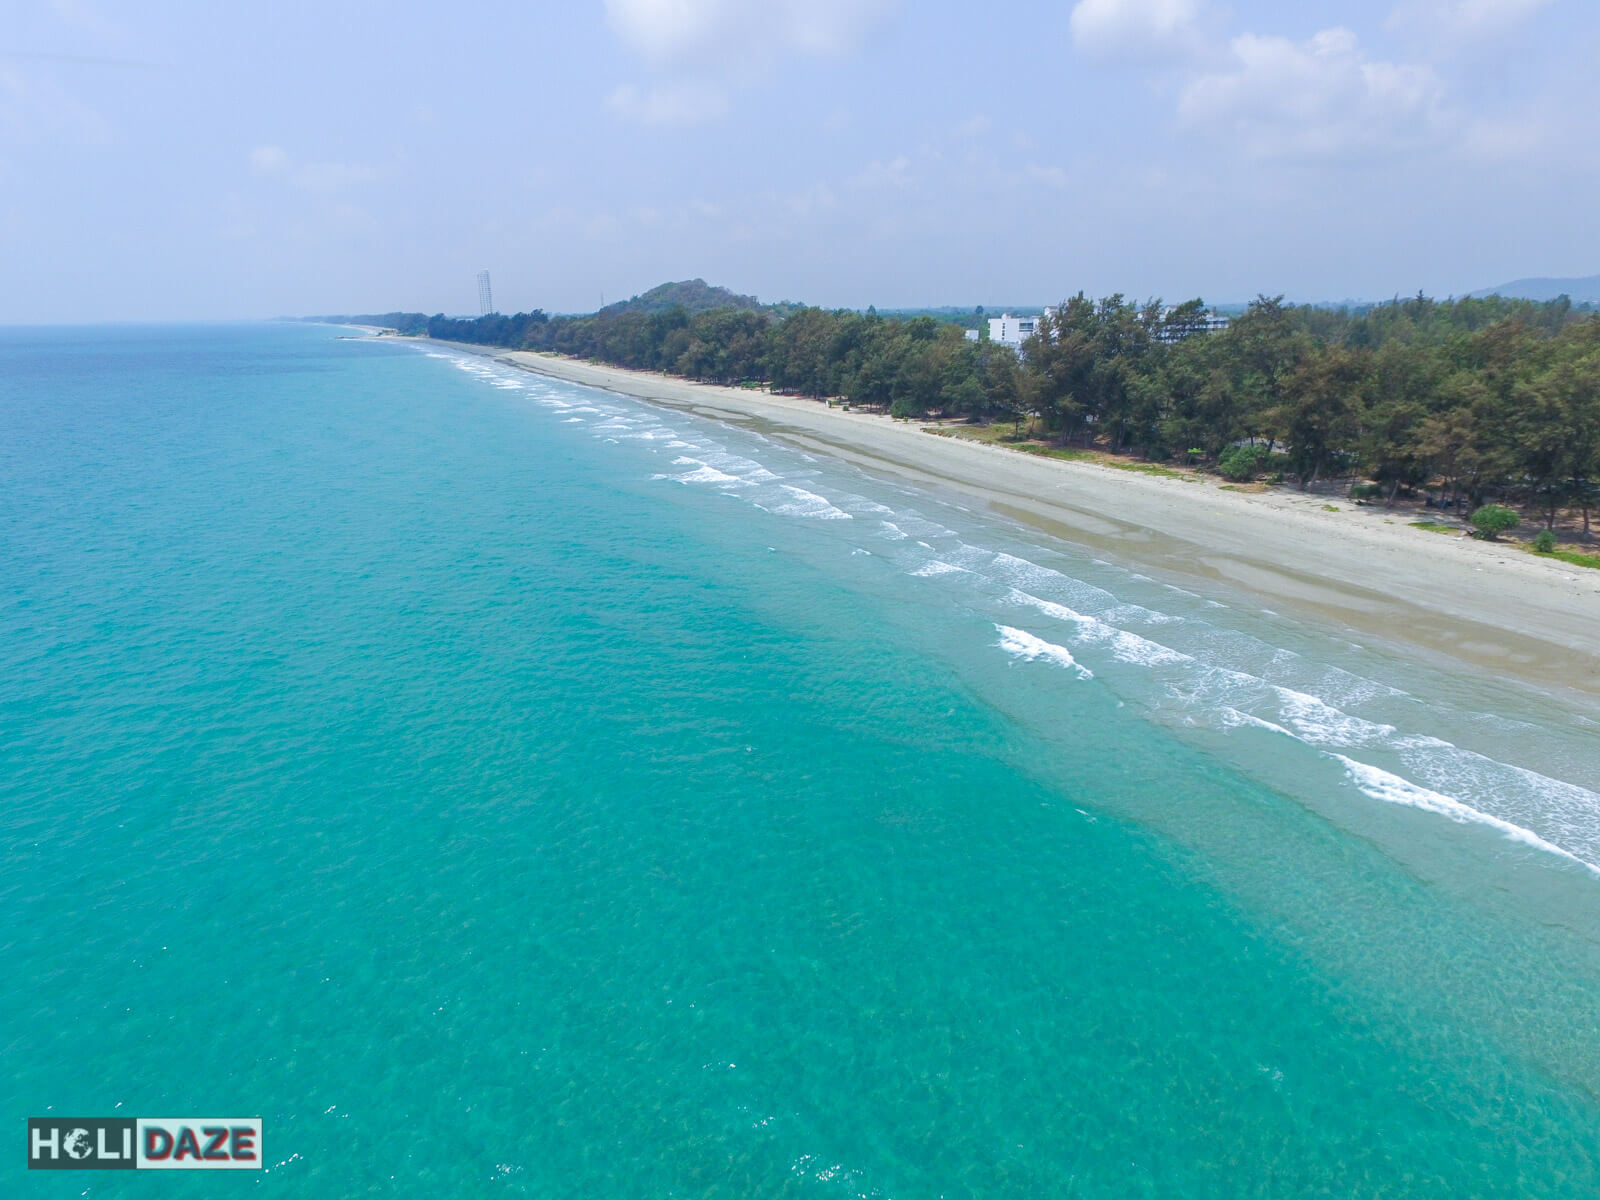 Nomad no more: this deserted beach in Thailand is my new home